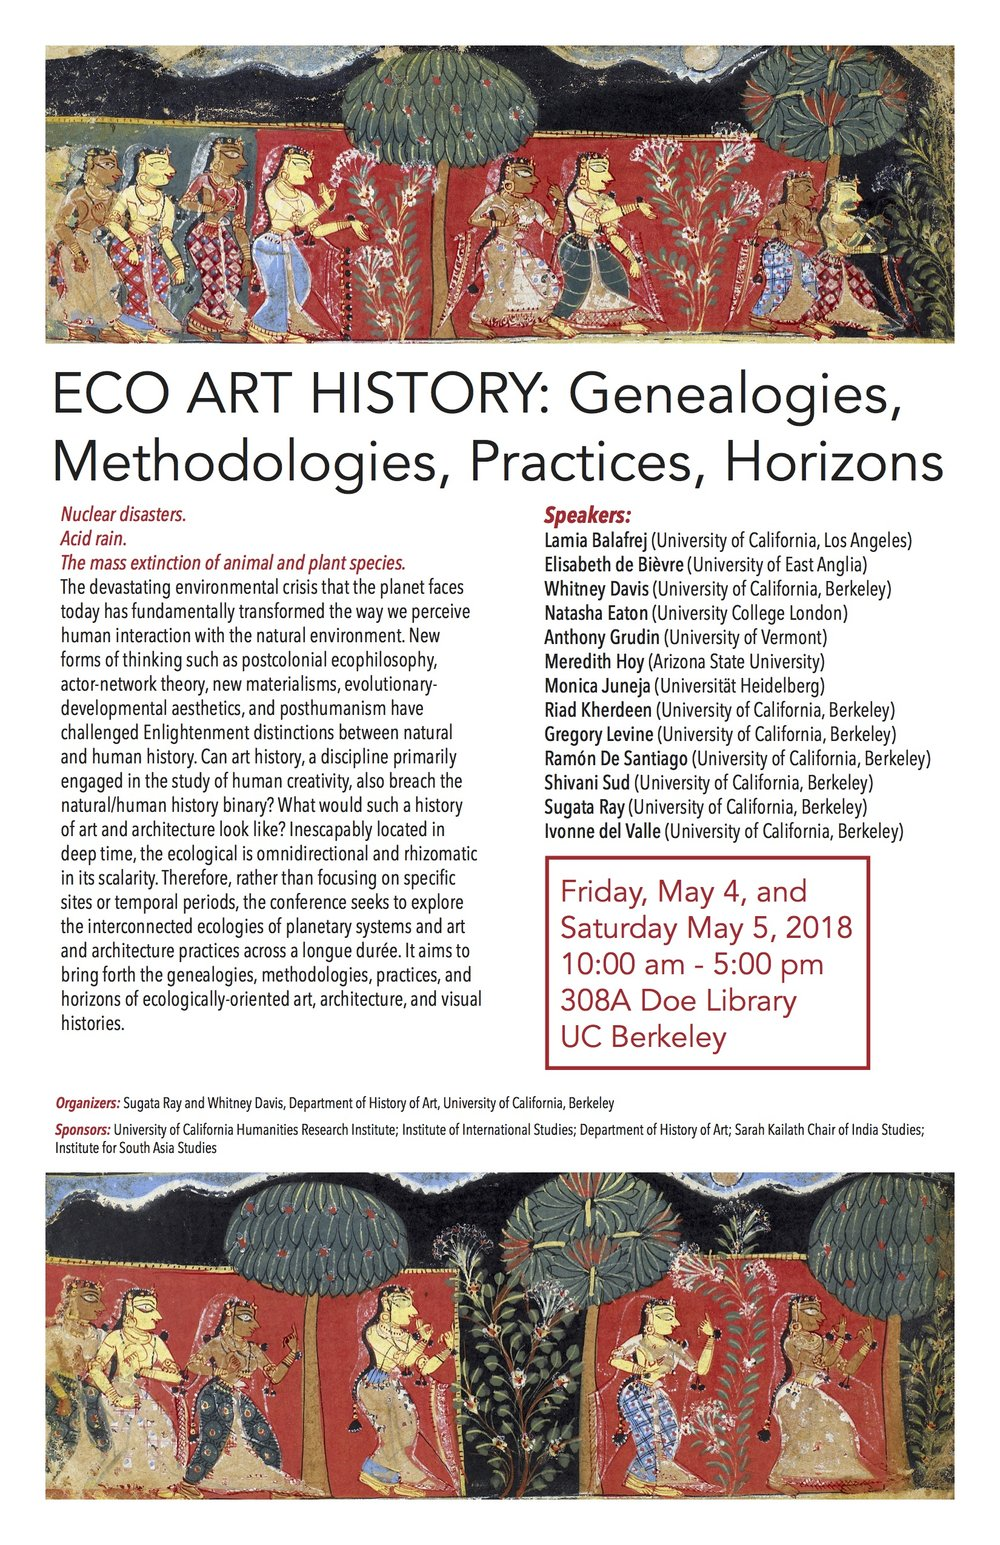 Eco Art History Conference 2018-2 copy.jpg